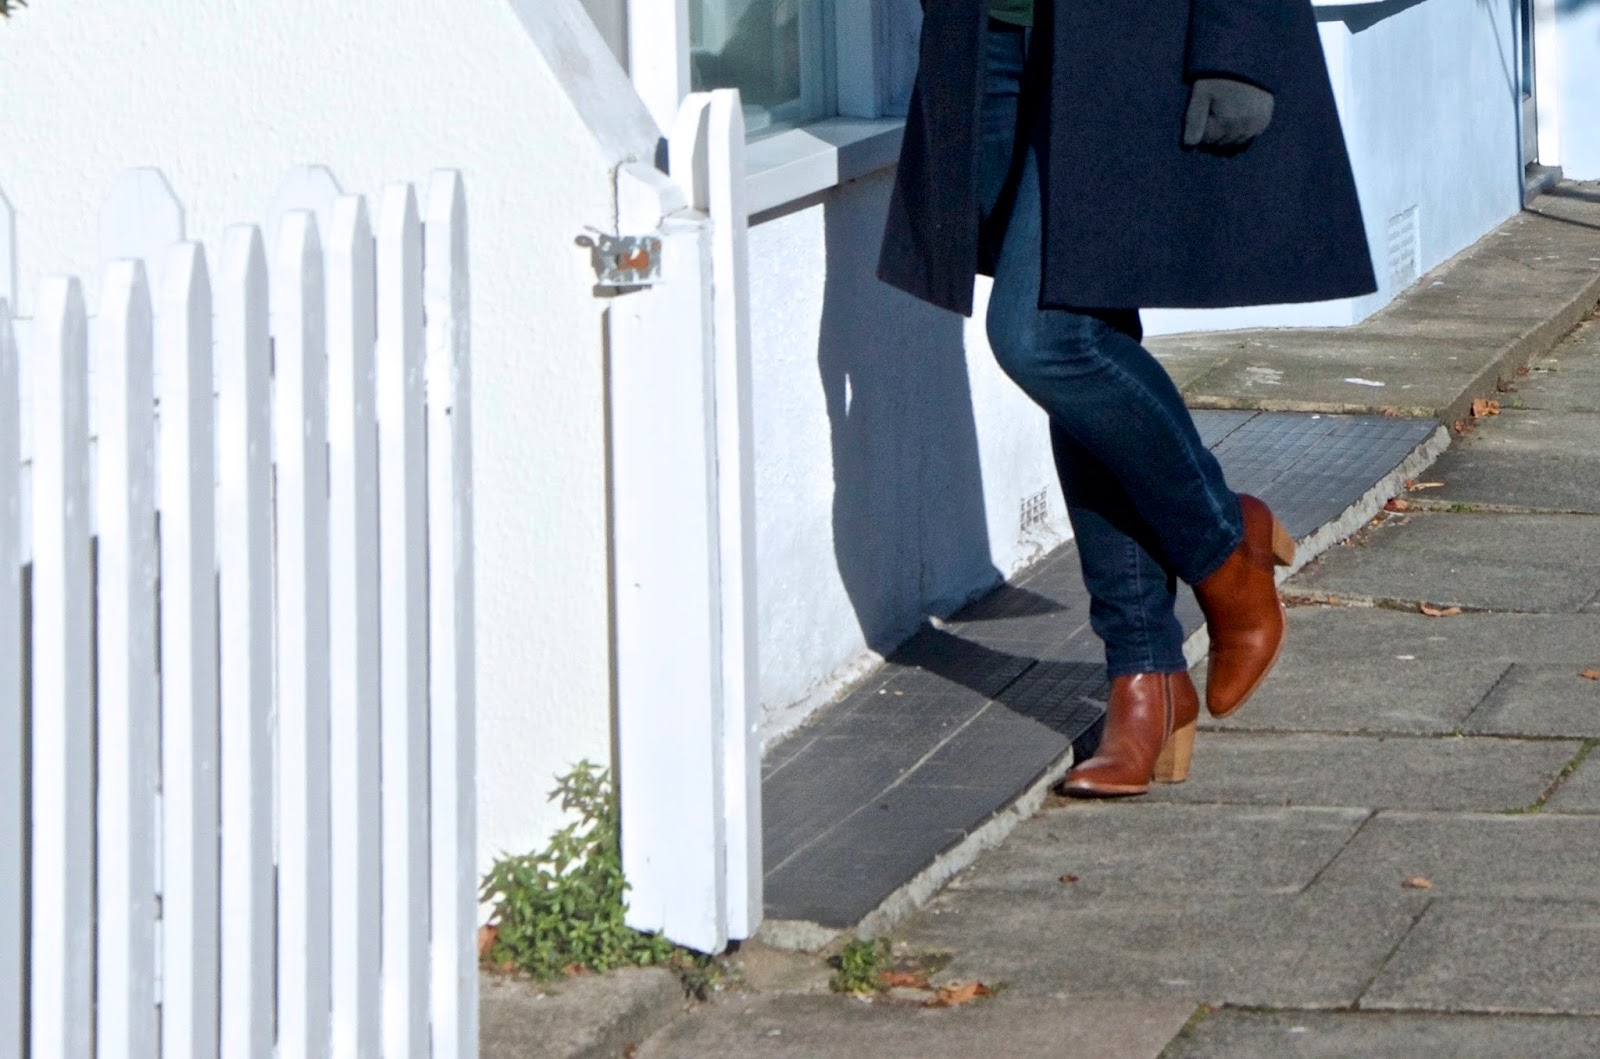 Navy coat, grey gloves, jeans and brown boots with white picket fence